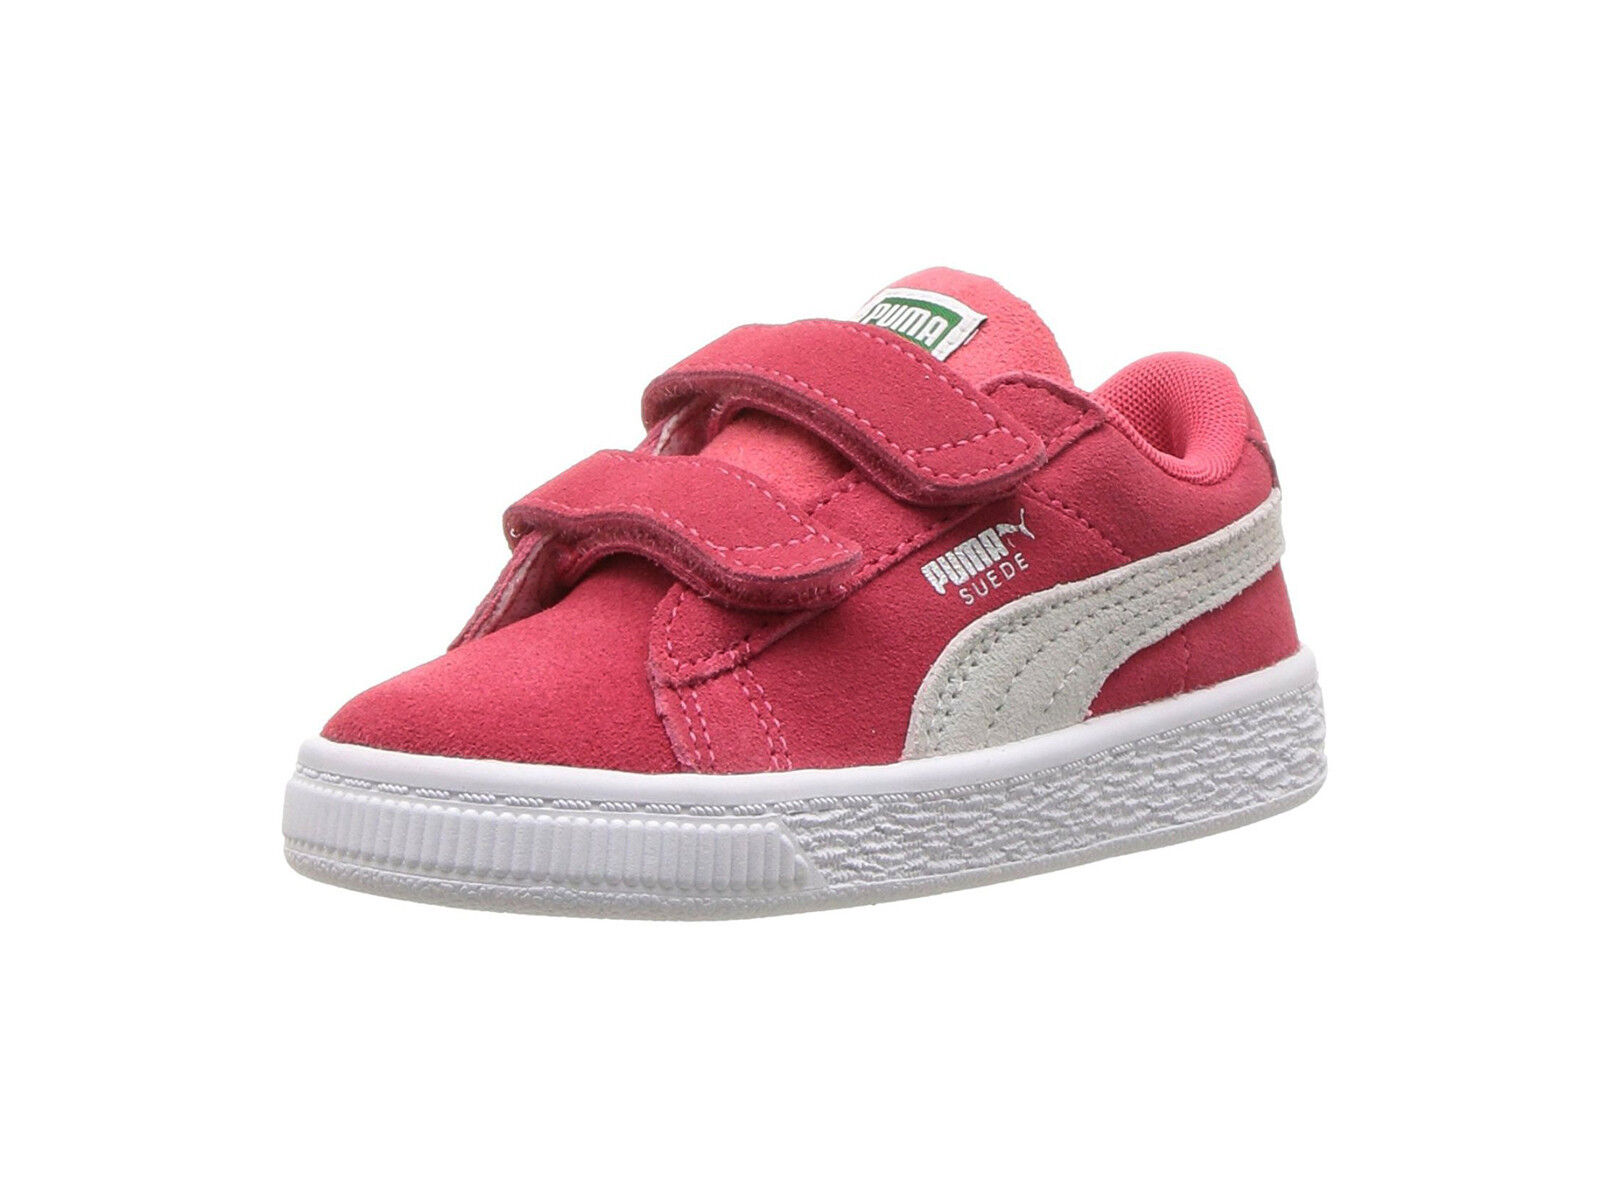 PUMA Shoes Girls Suede Classic V Toddler Infant Baby Kids Pink White Sneaker